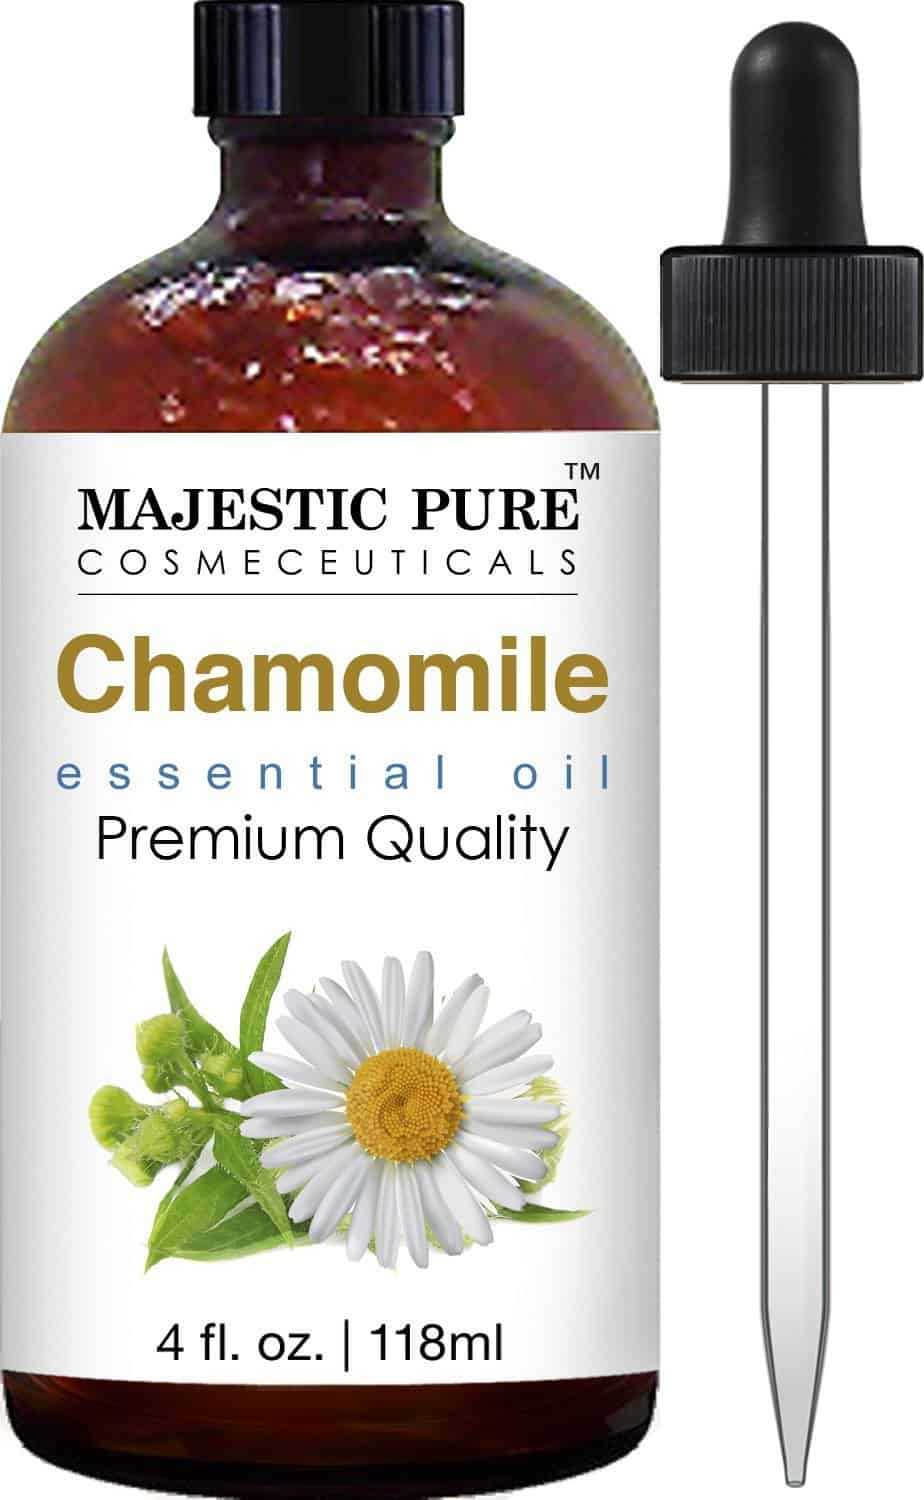 Chamomile Essential Oil From Majestic Pure